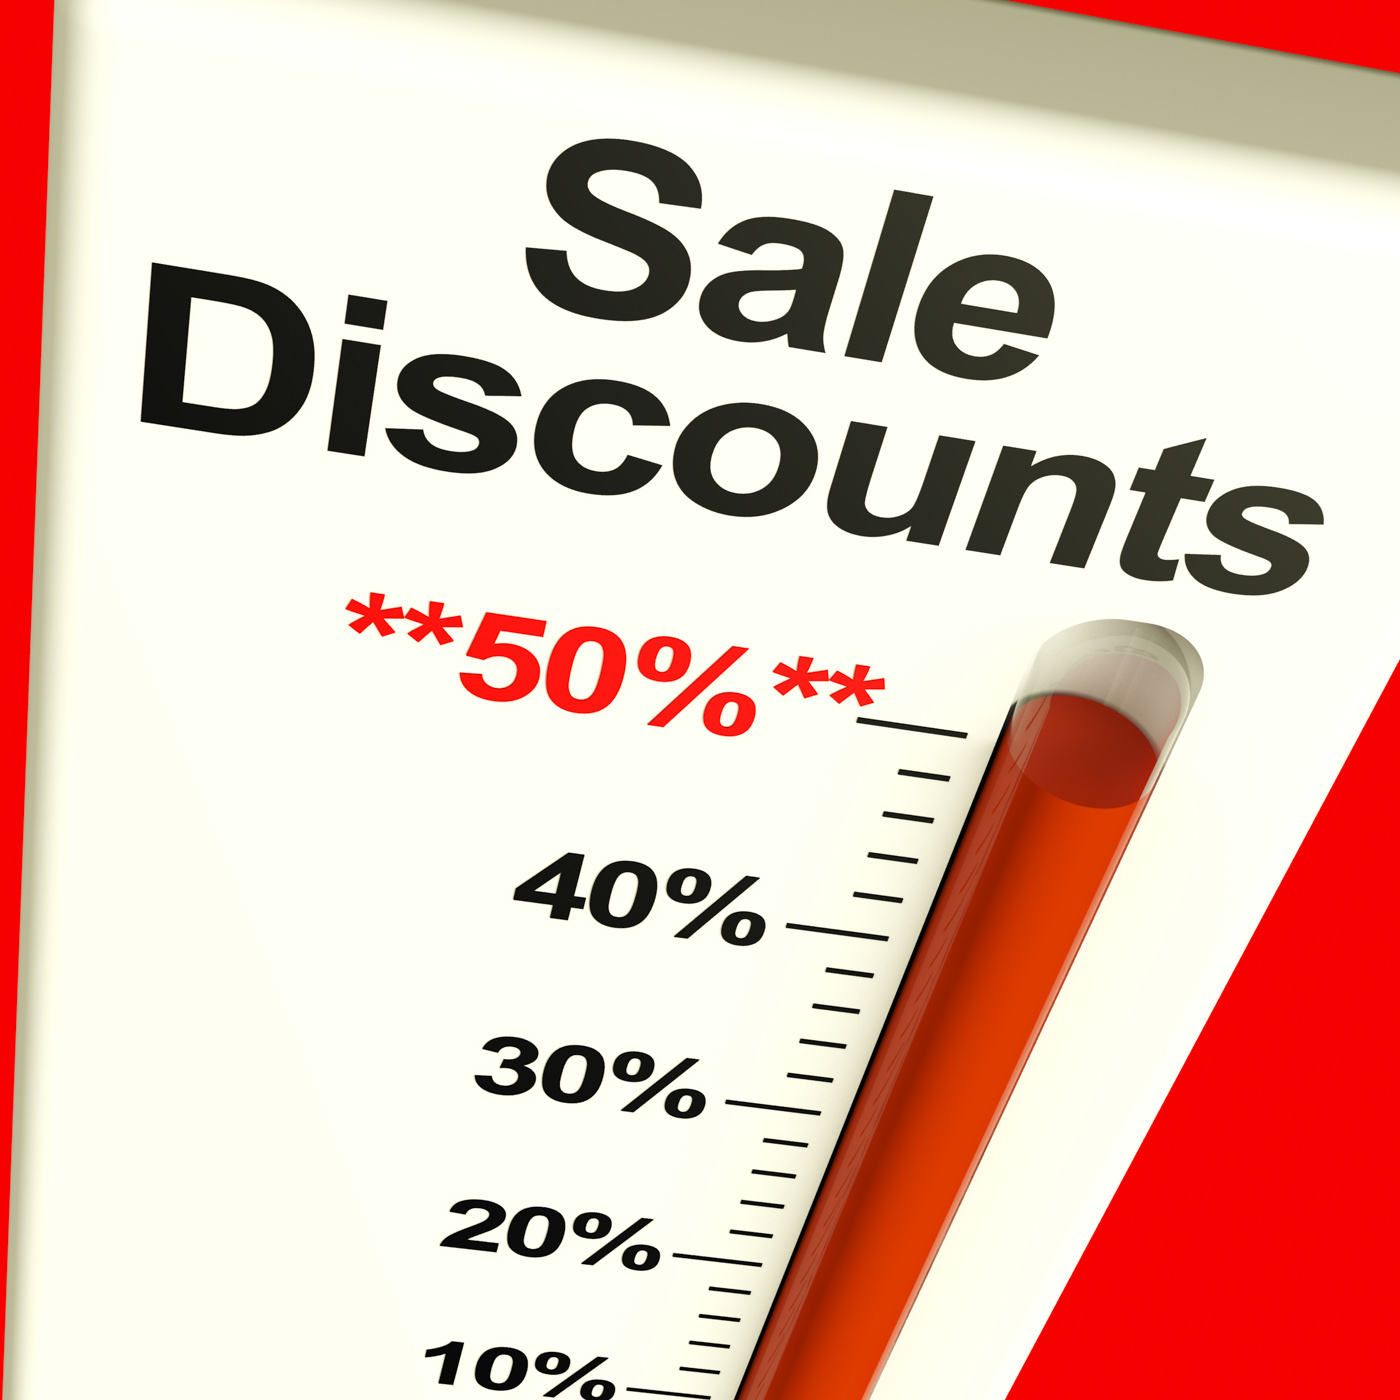 Fifty percent sale discounts showing bargain closeout selloff photo